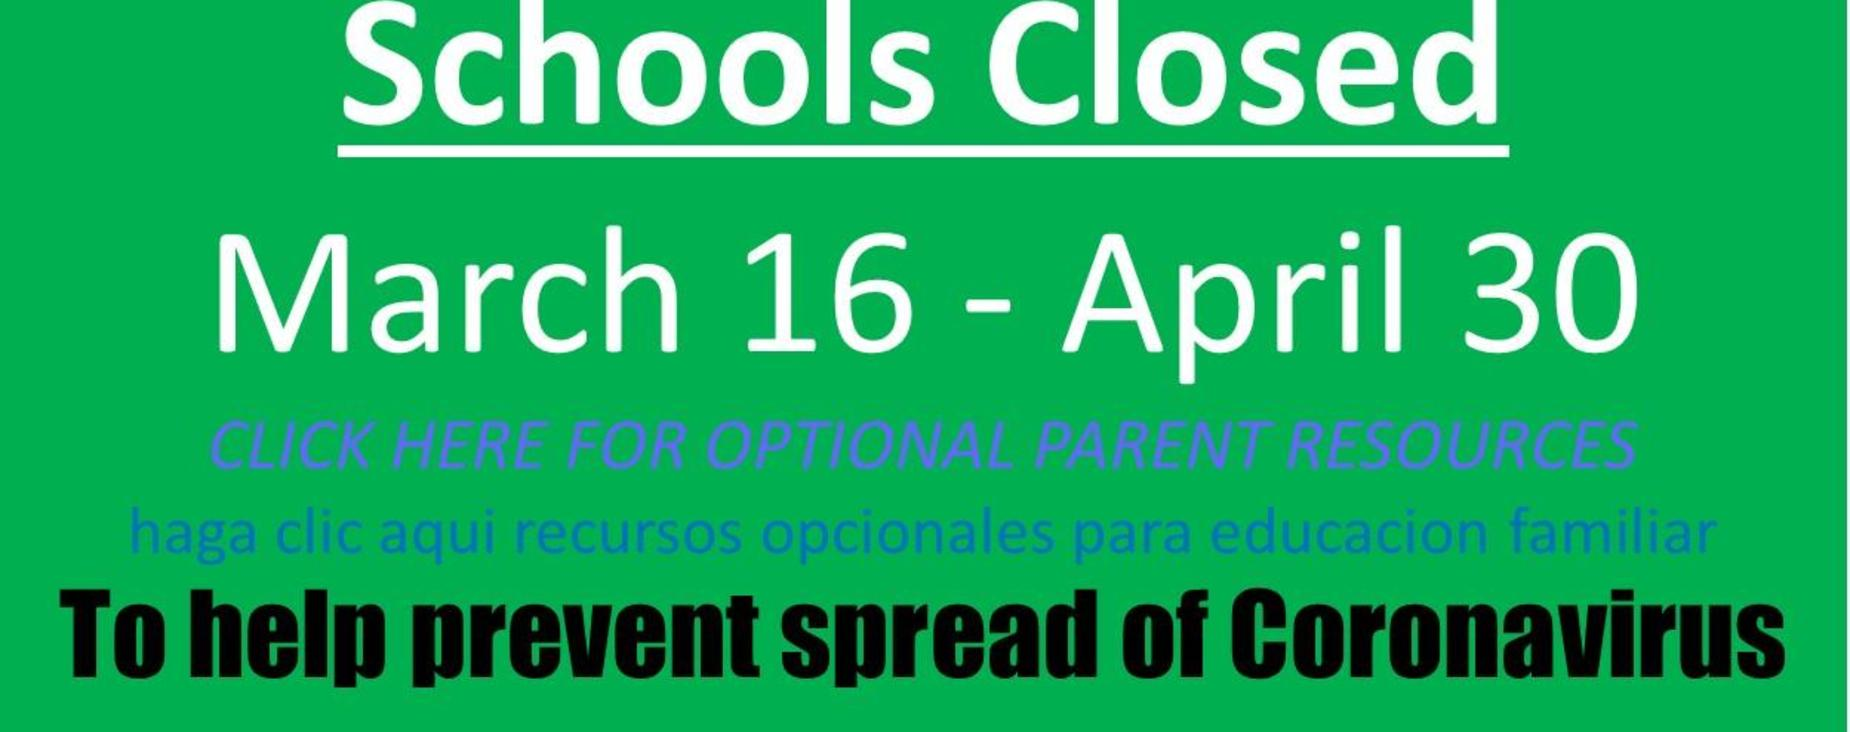 schools closed March 16 - April 30. Click here for optional educational materials